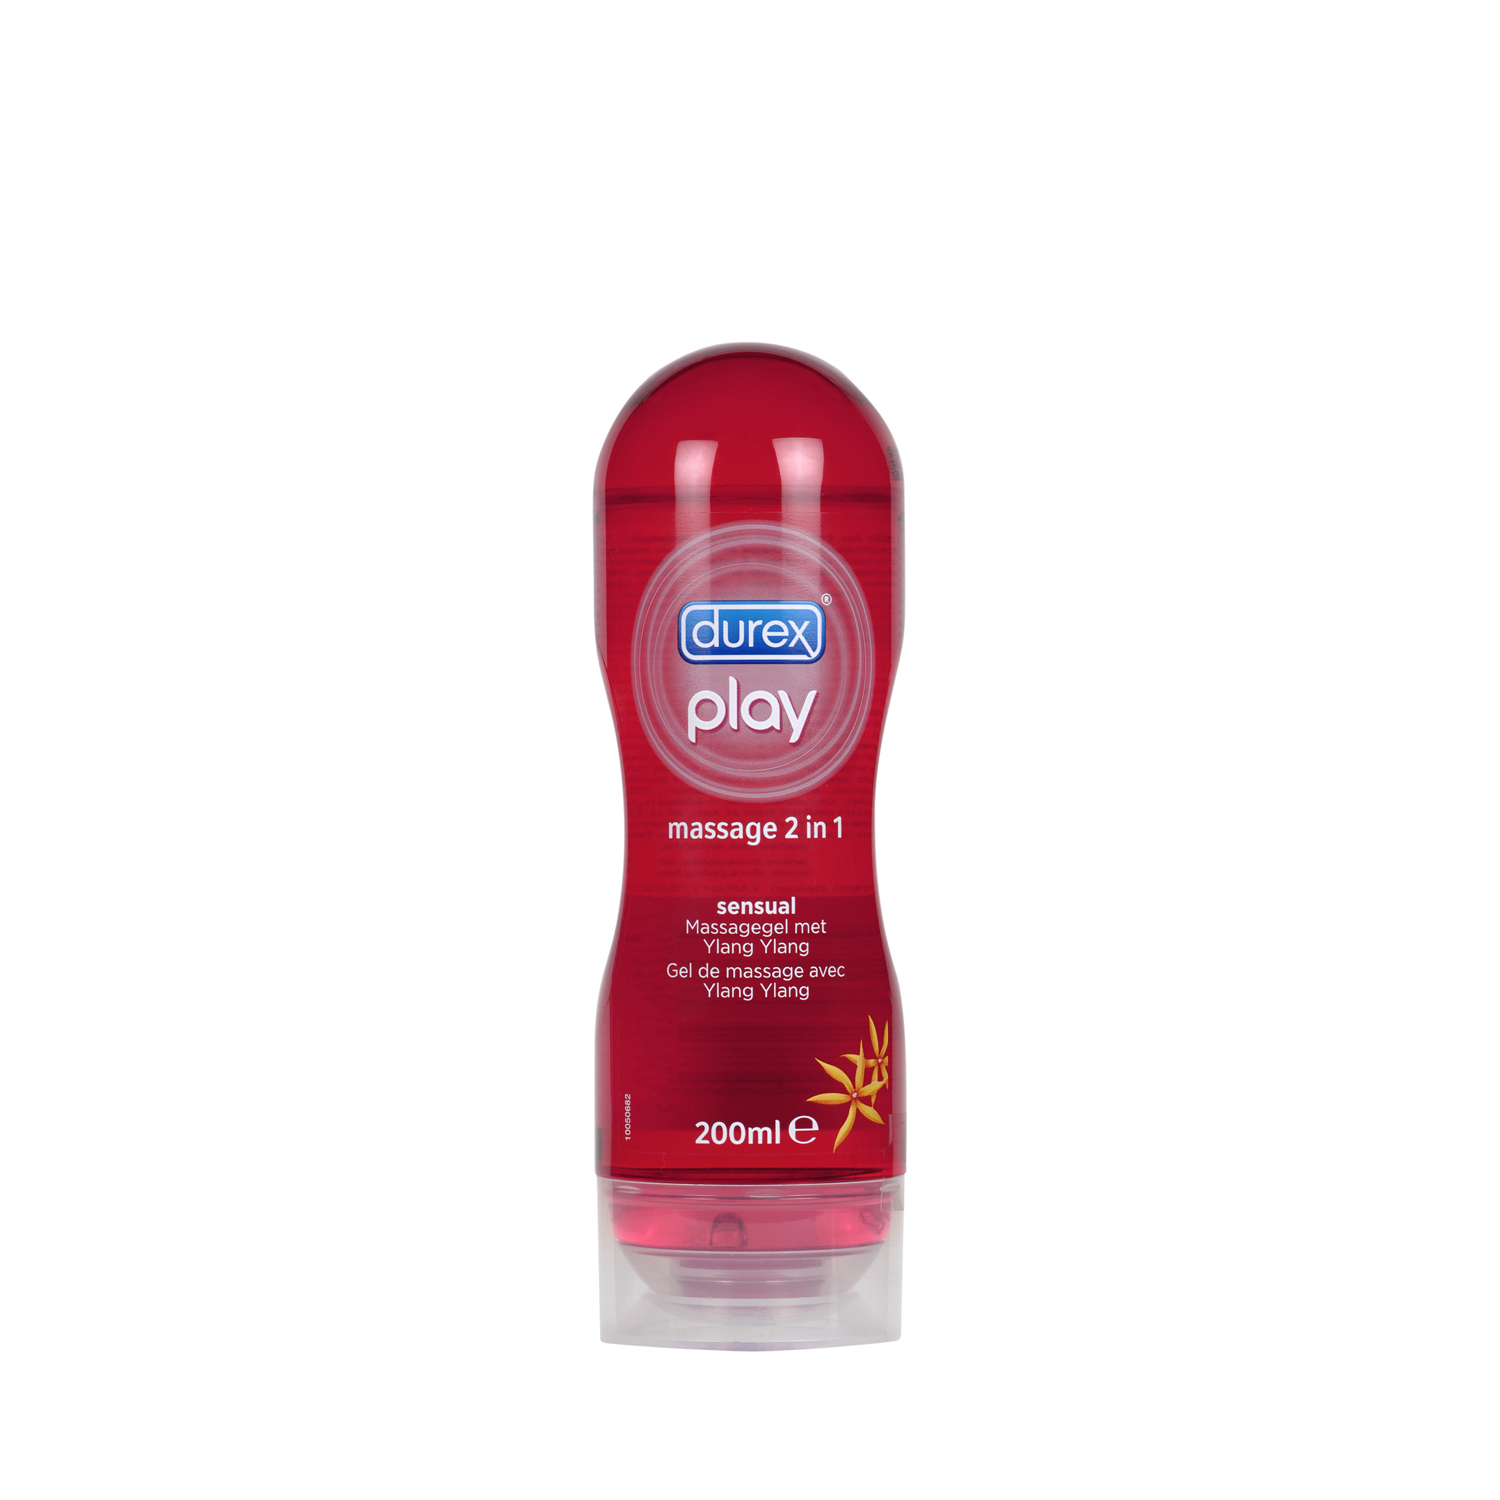 Play Massage 2in1 Ylang Ylang